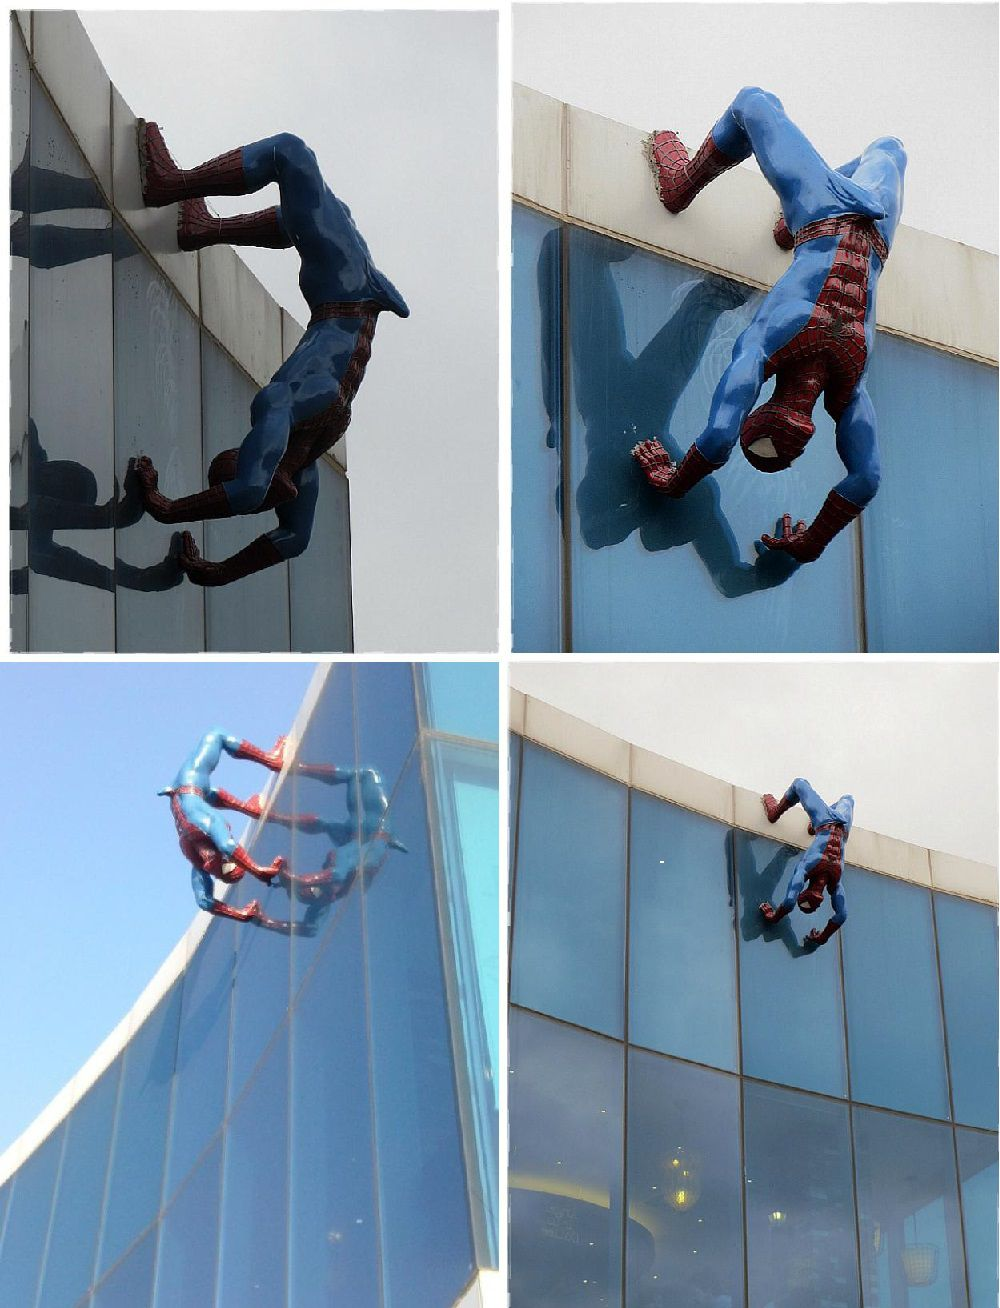 Korea erected a Spiderman sculpture in a public space, offending many